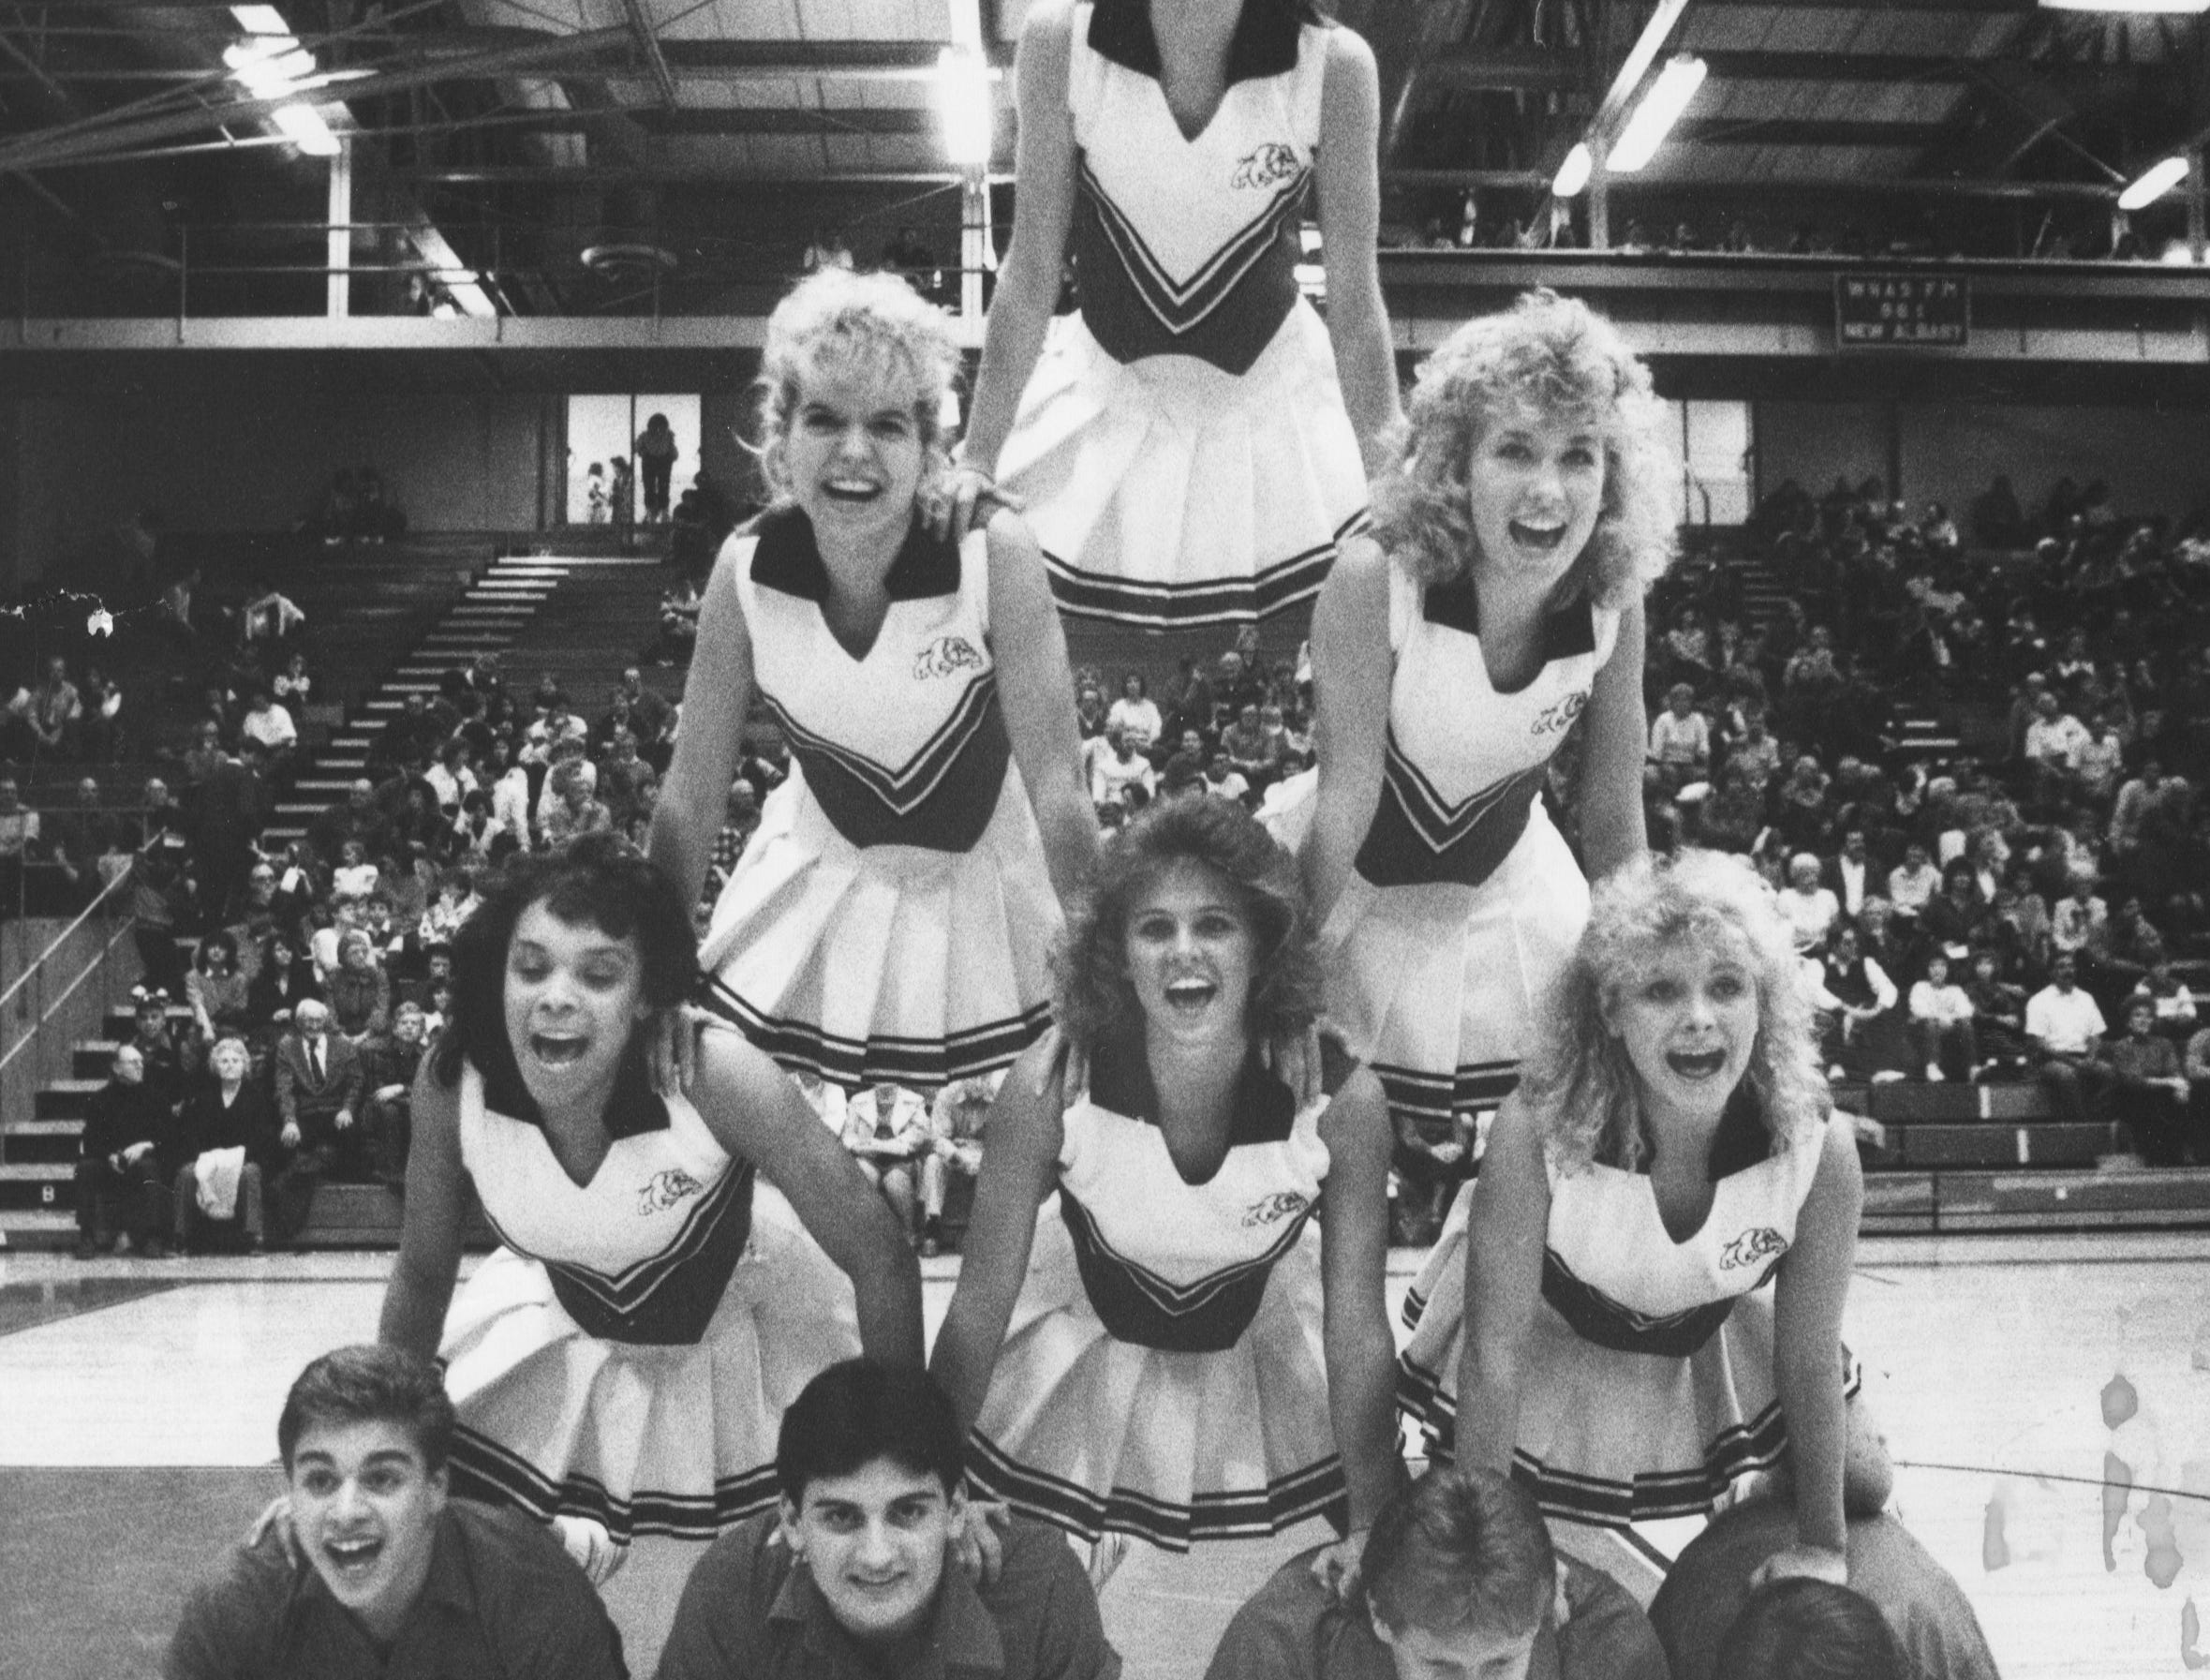 The New Albany High cheerleaders have fun at a basketball game. Jan. 14, 1987